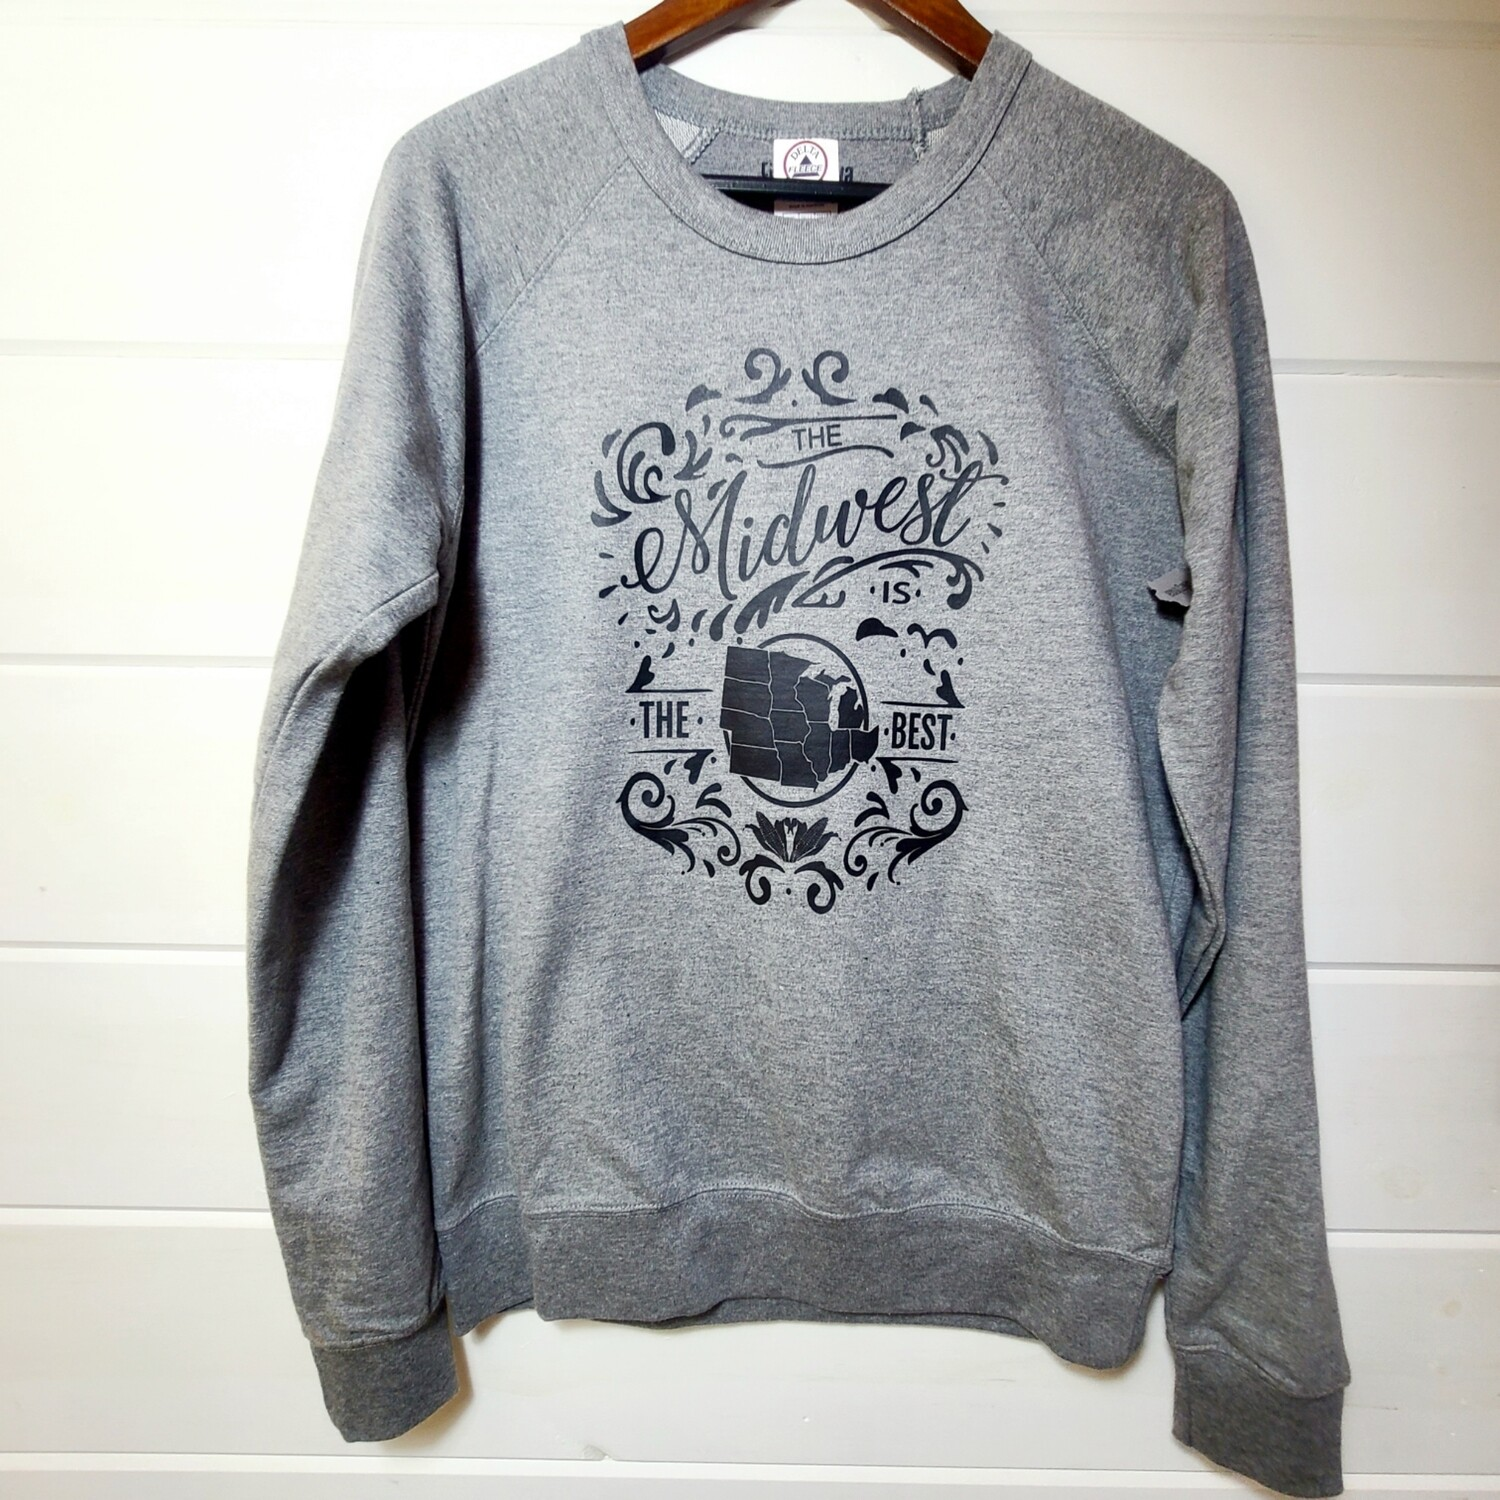 Midwest is Best| sweatshirt | size MEDIUM